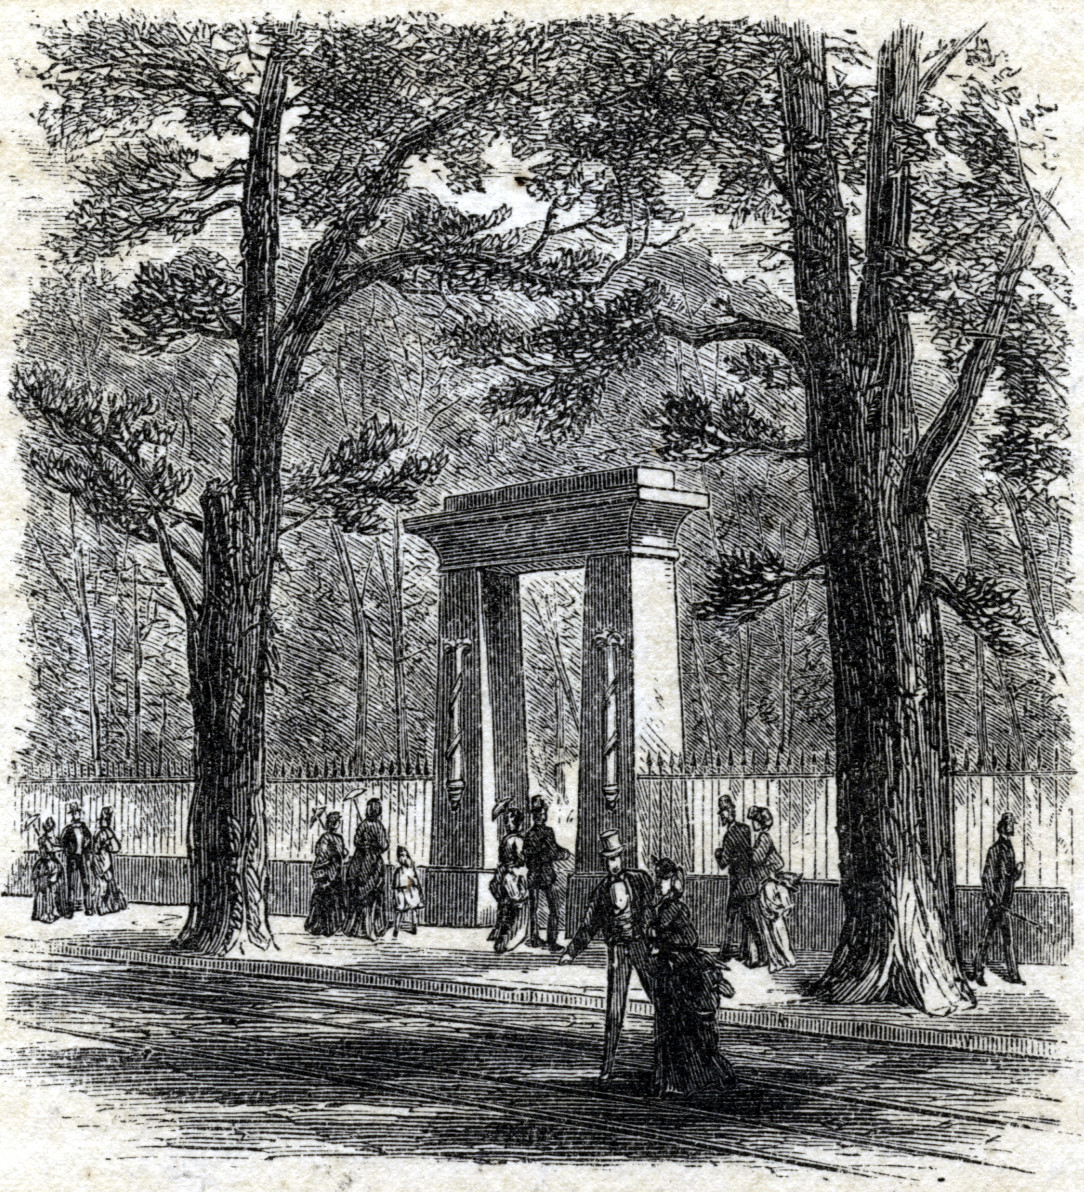 Gateway to the Granary Burying Ground, Tremont Street, Boston, 1881